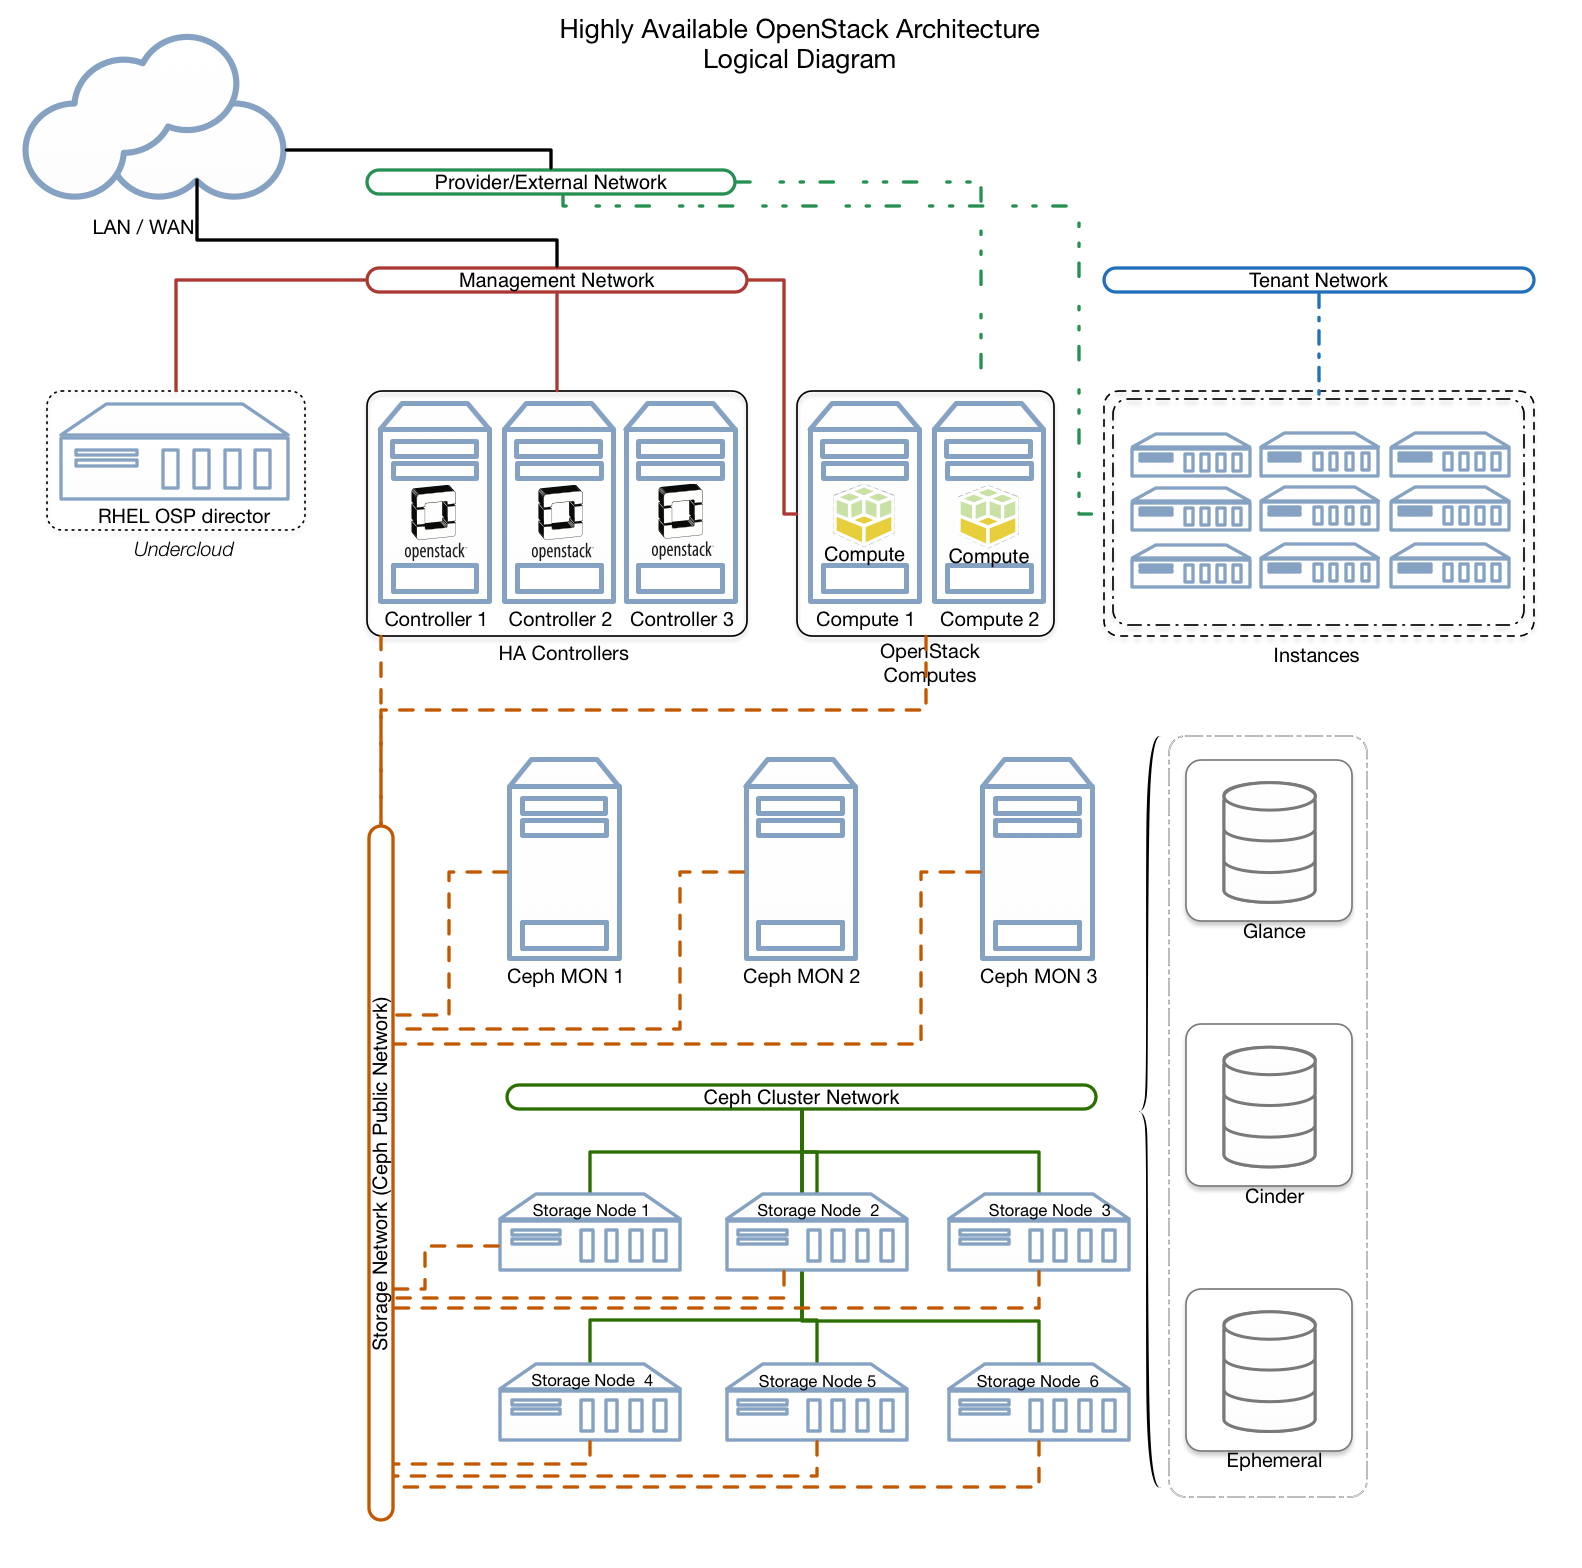 Architecting your first OpenStack cloud.